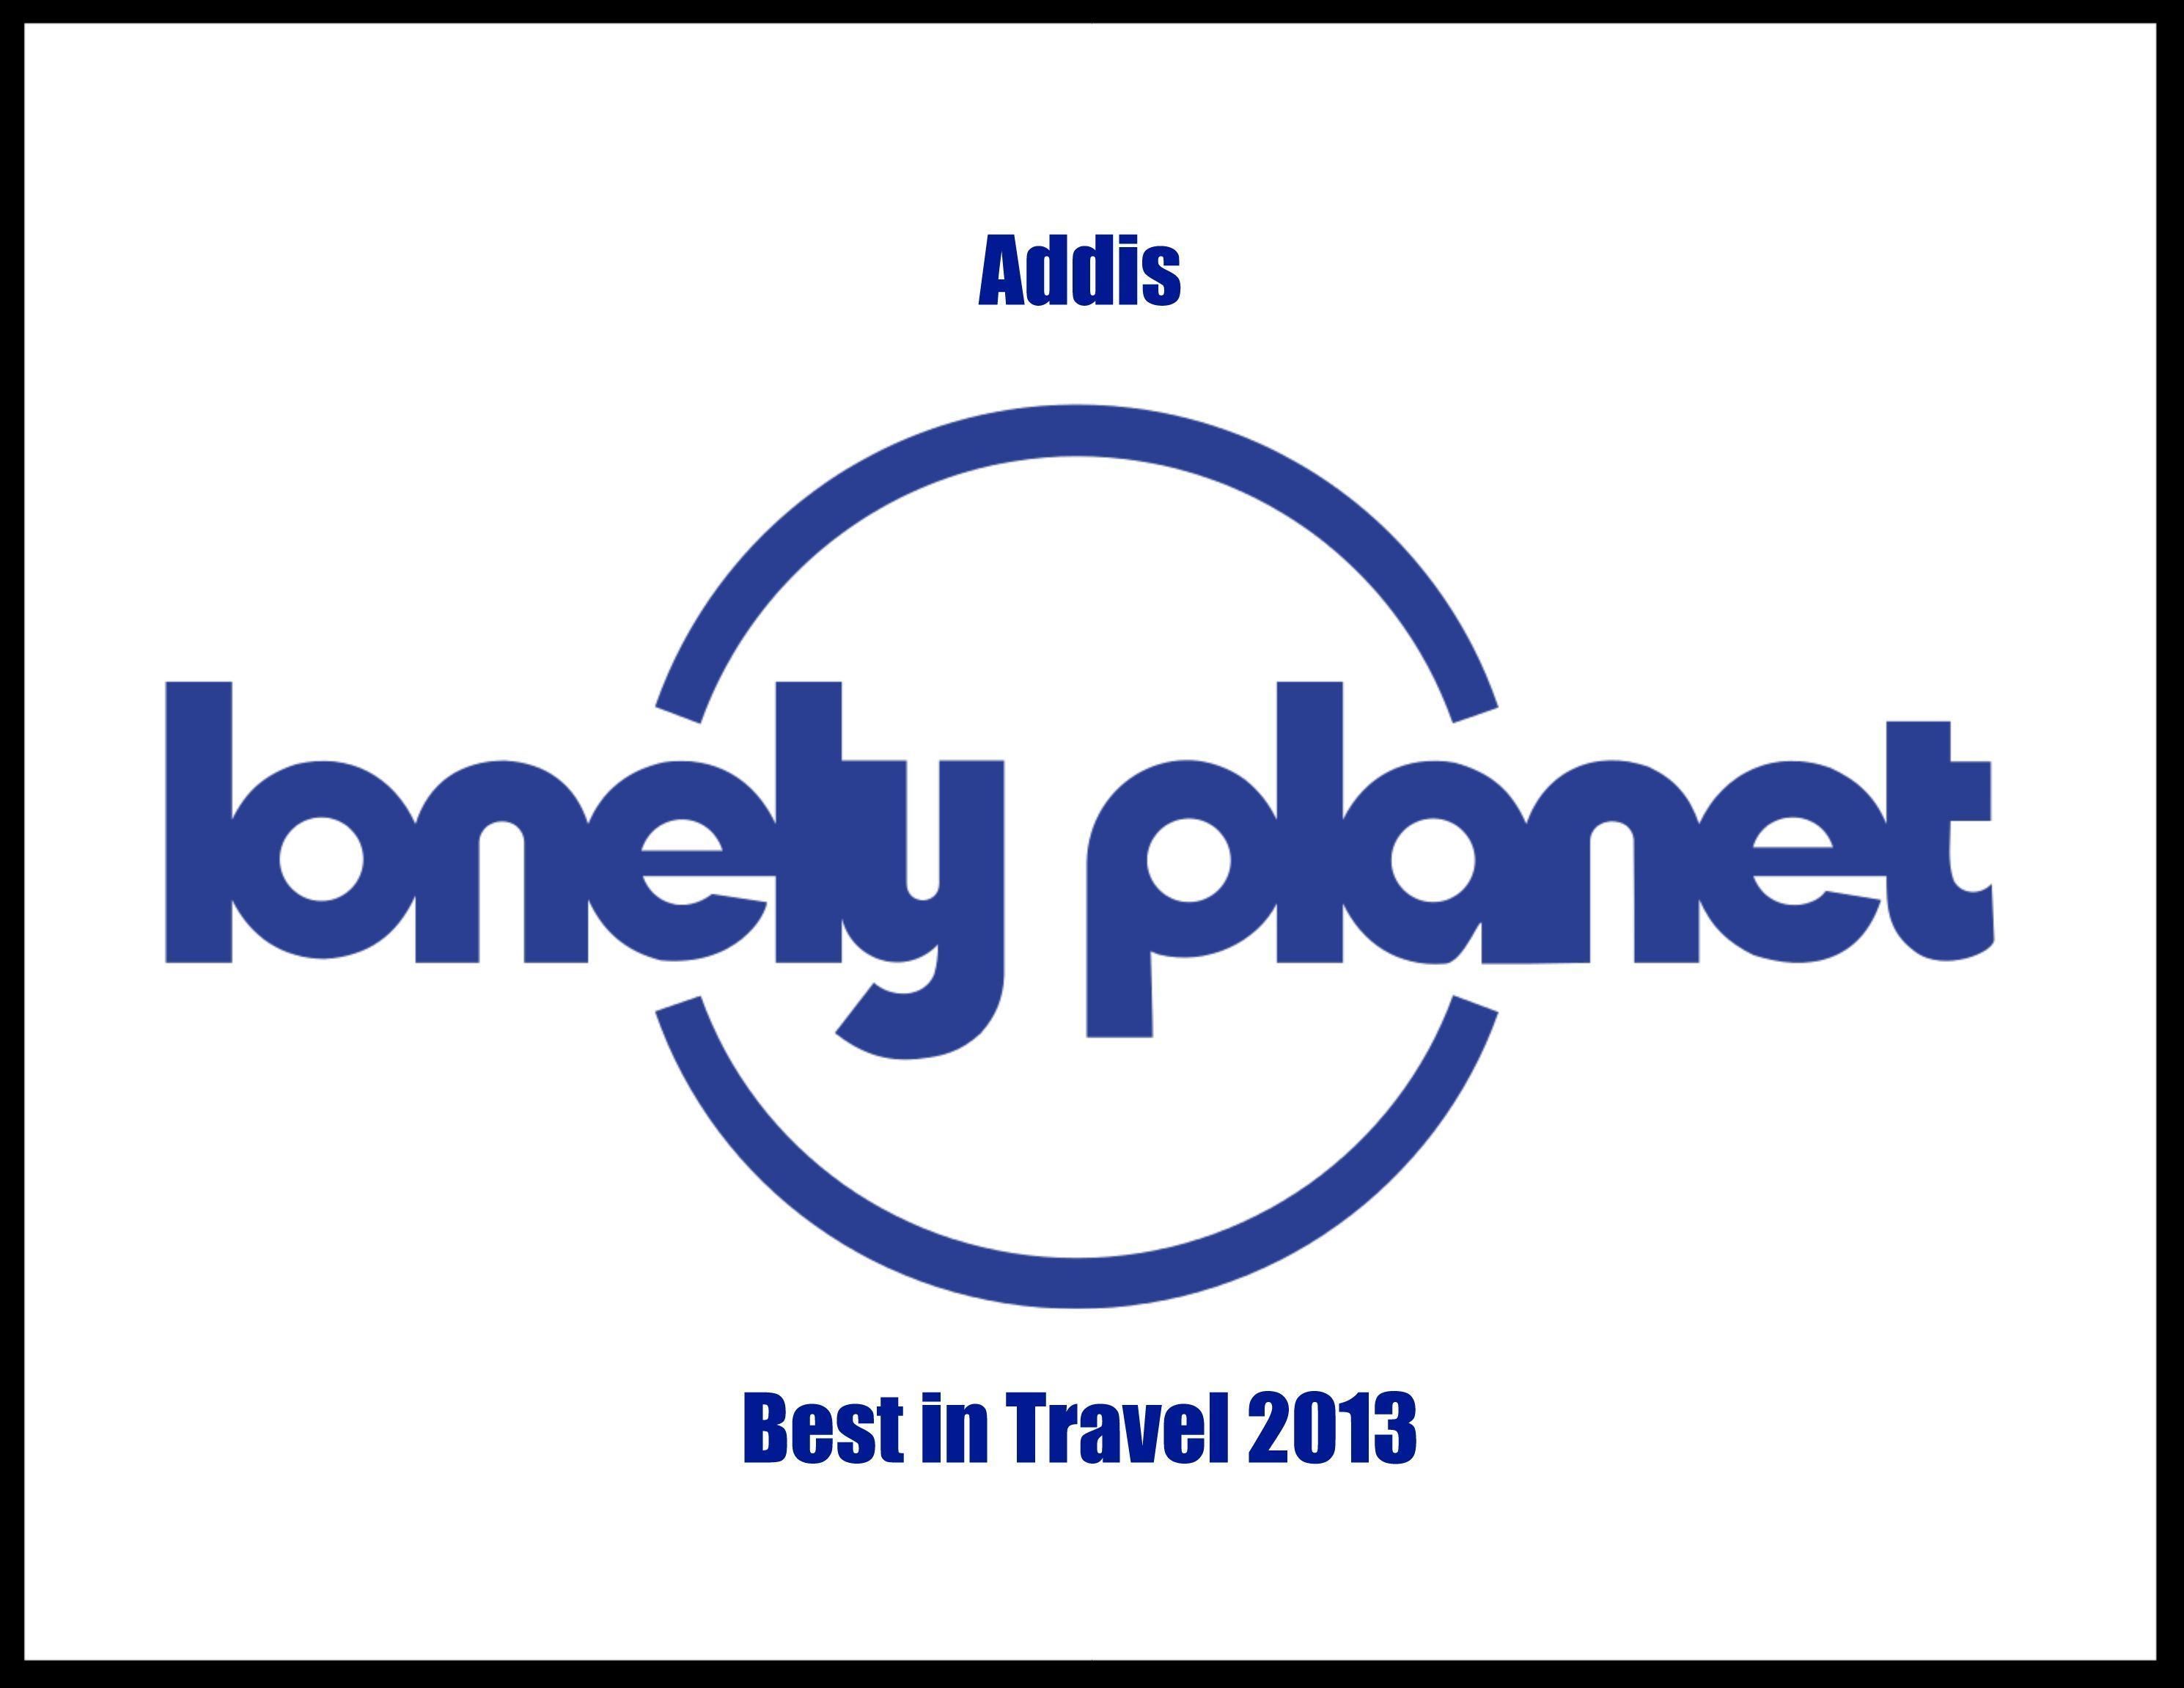 Lonely Planet Certificate: Best in Travel Addis 2013